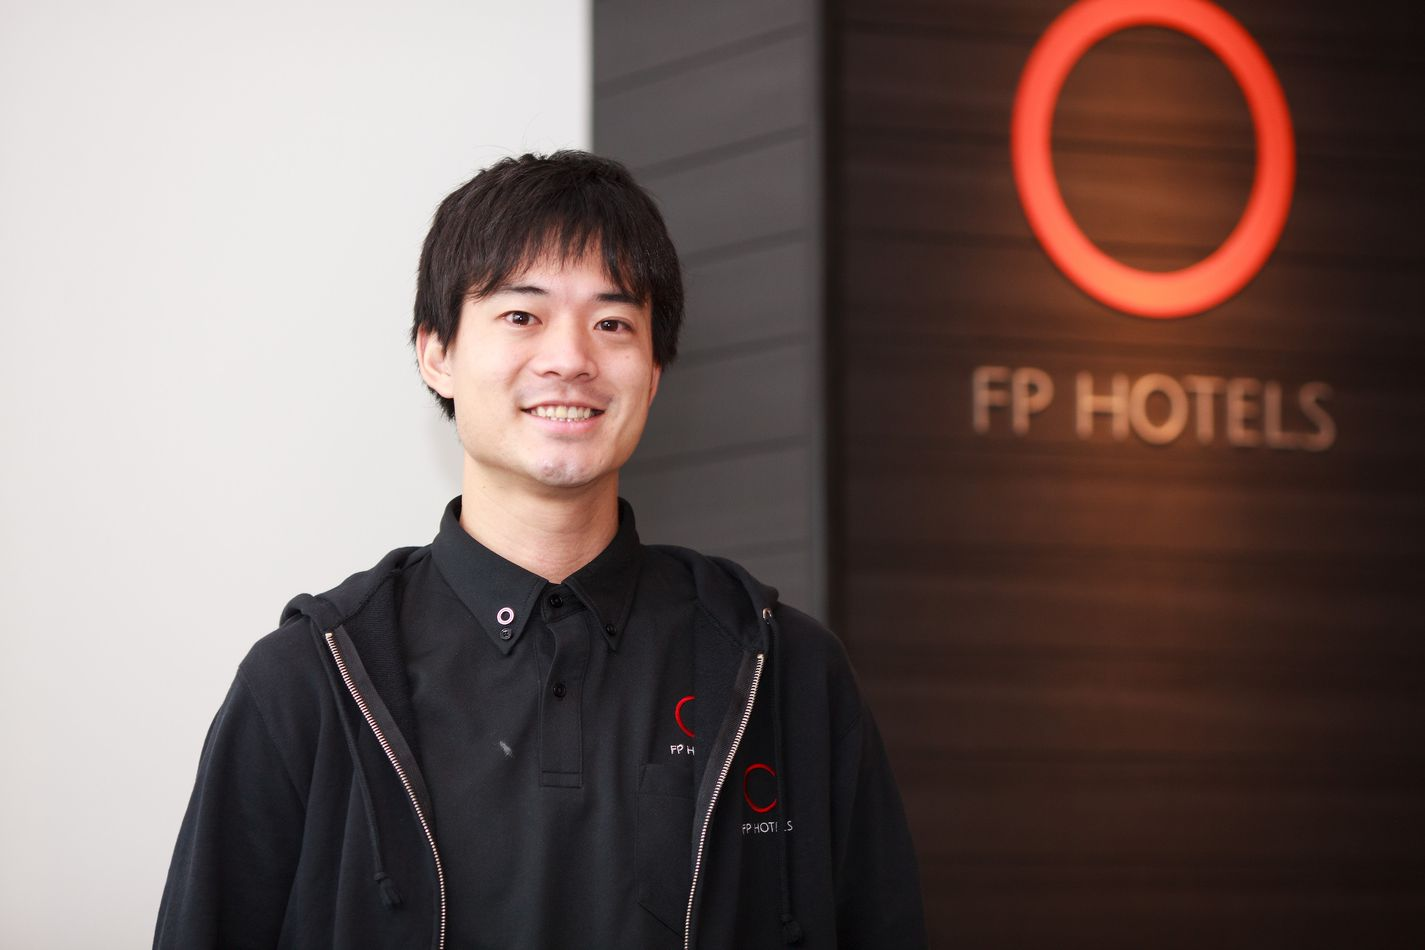 FP HOTELS South Namba